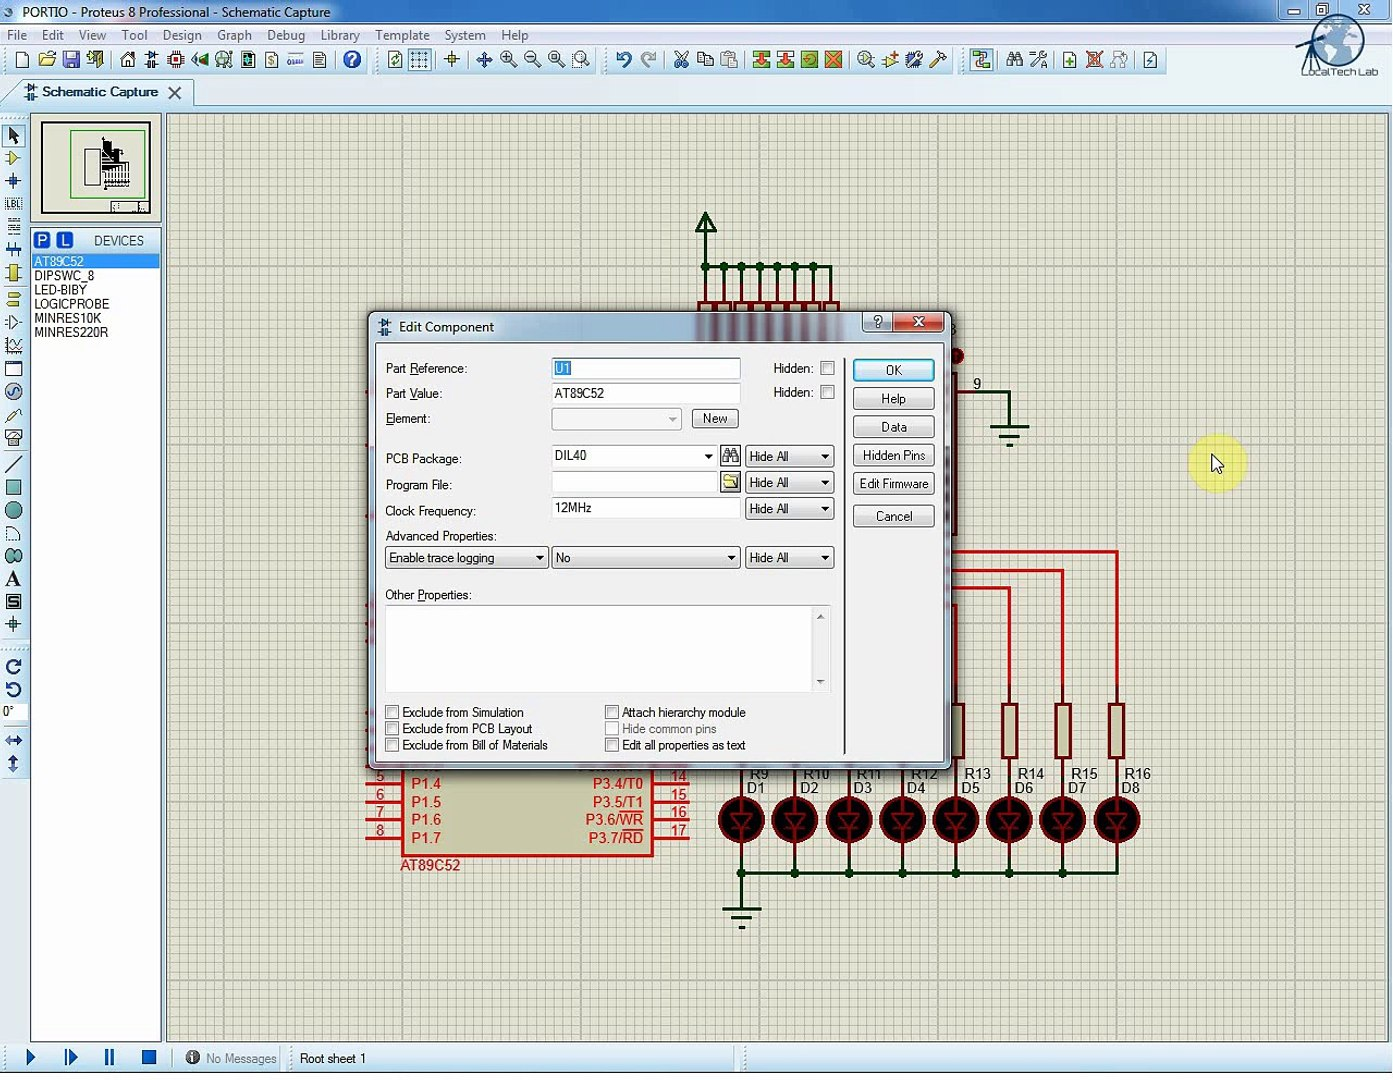 8051 I/O Port Programming using KEIL C with AT89S52 simulation on Proteus 8  and Prototyping Board